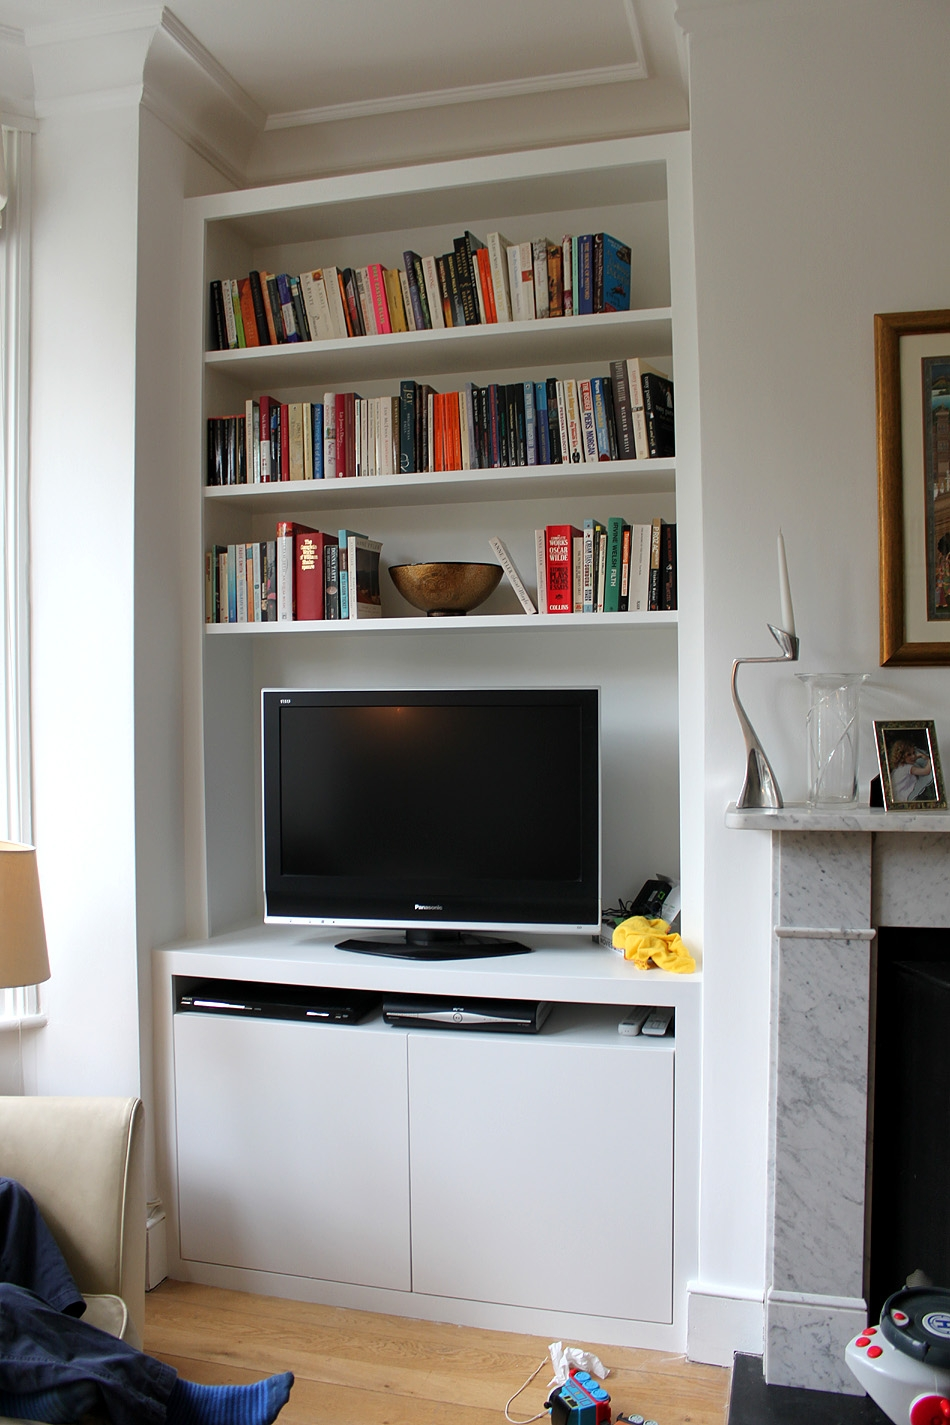 Fitted Wardrobes Bookcases Shelving Floating Shelves London With Bespoke Tv Cabinets (Image 9 of 15)